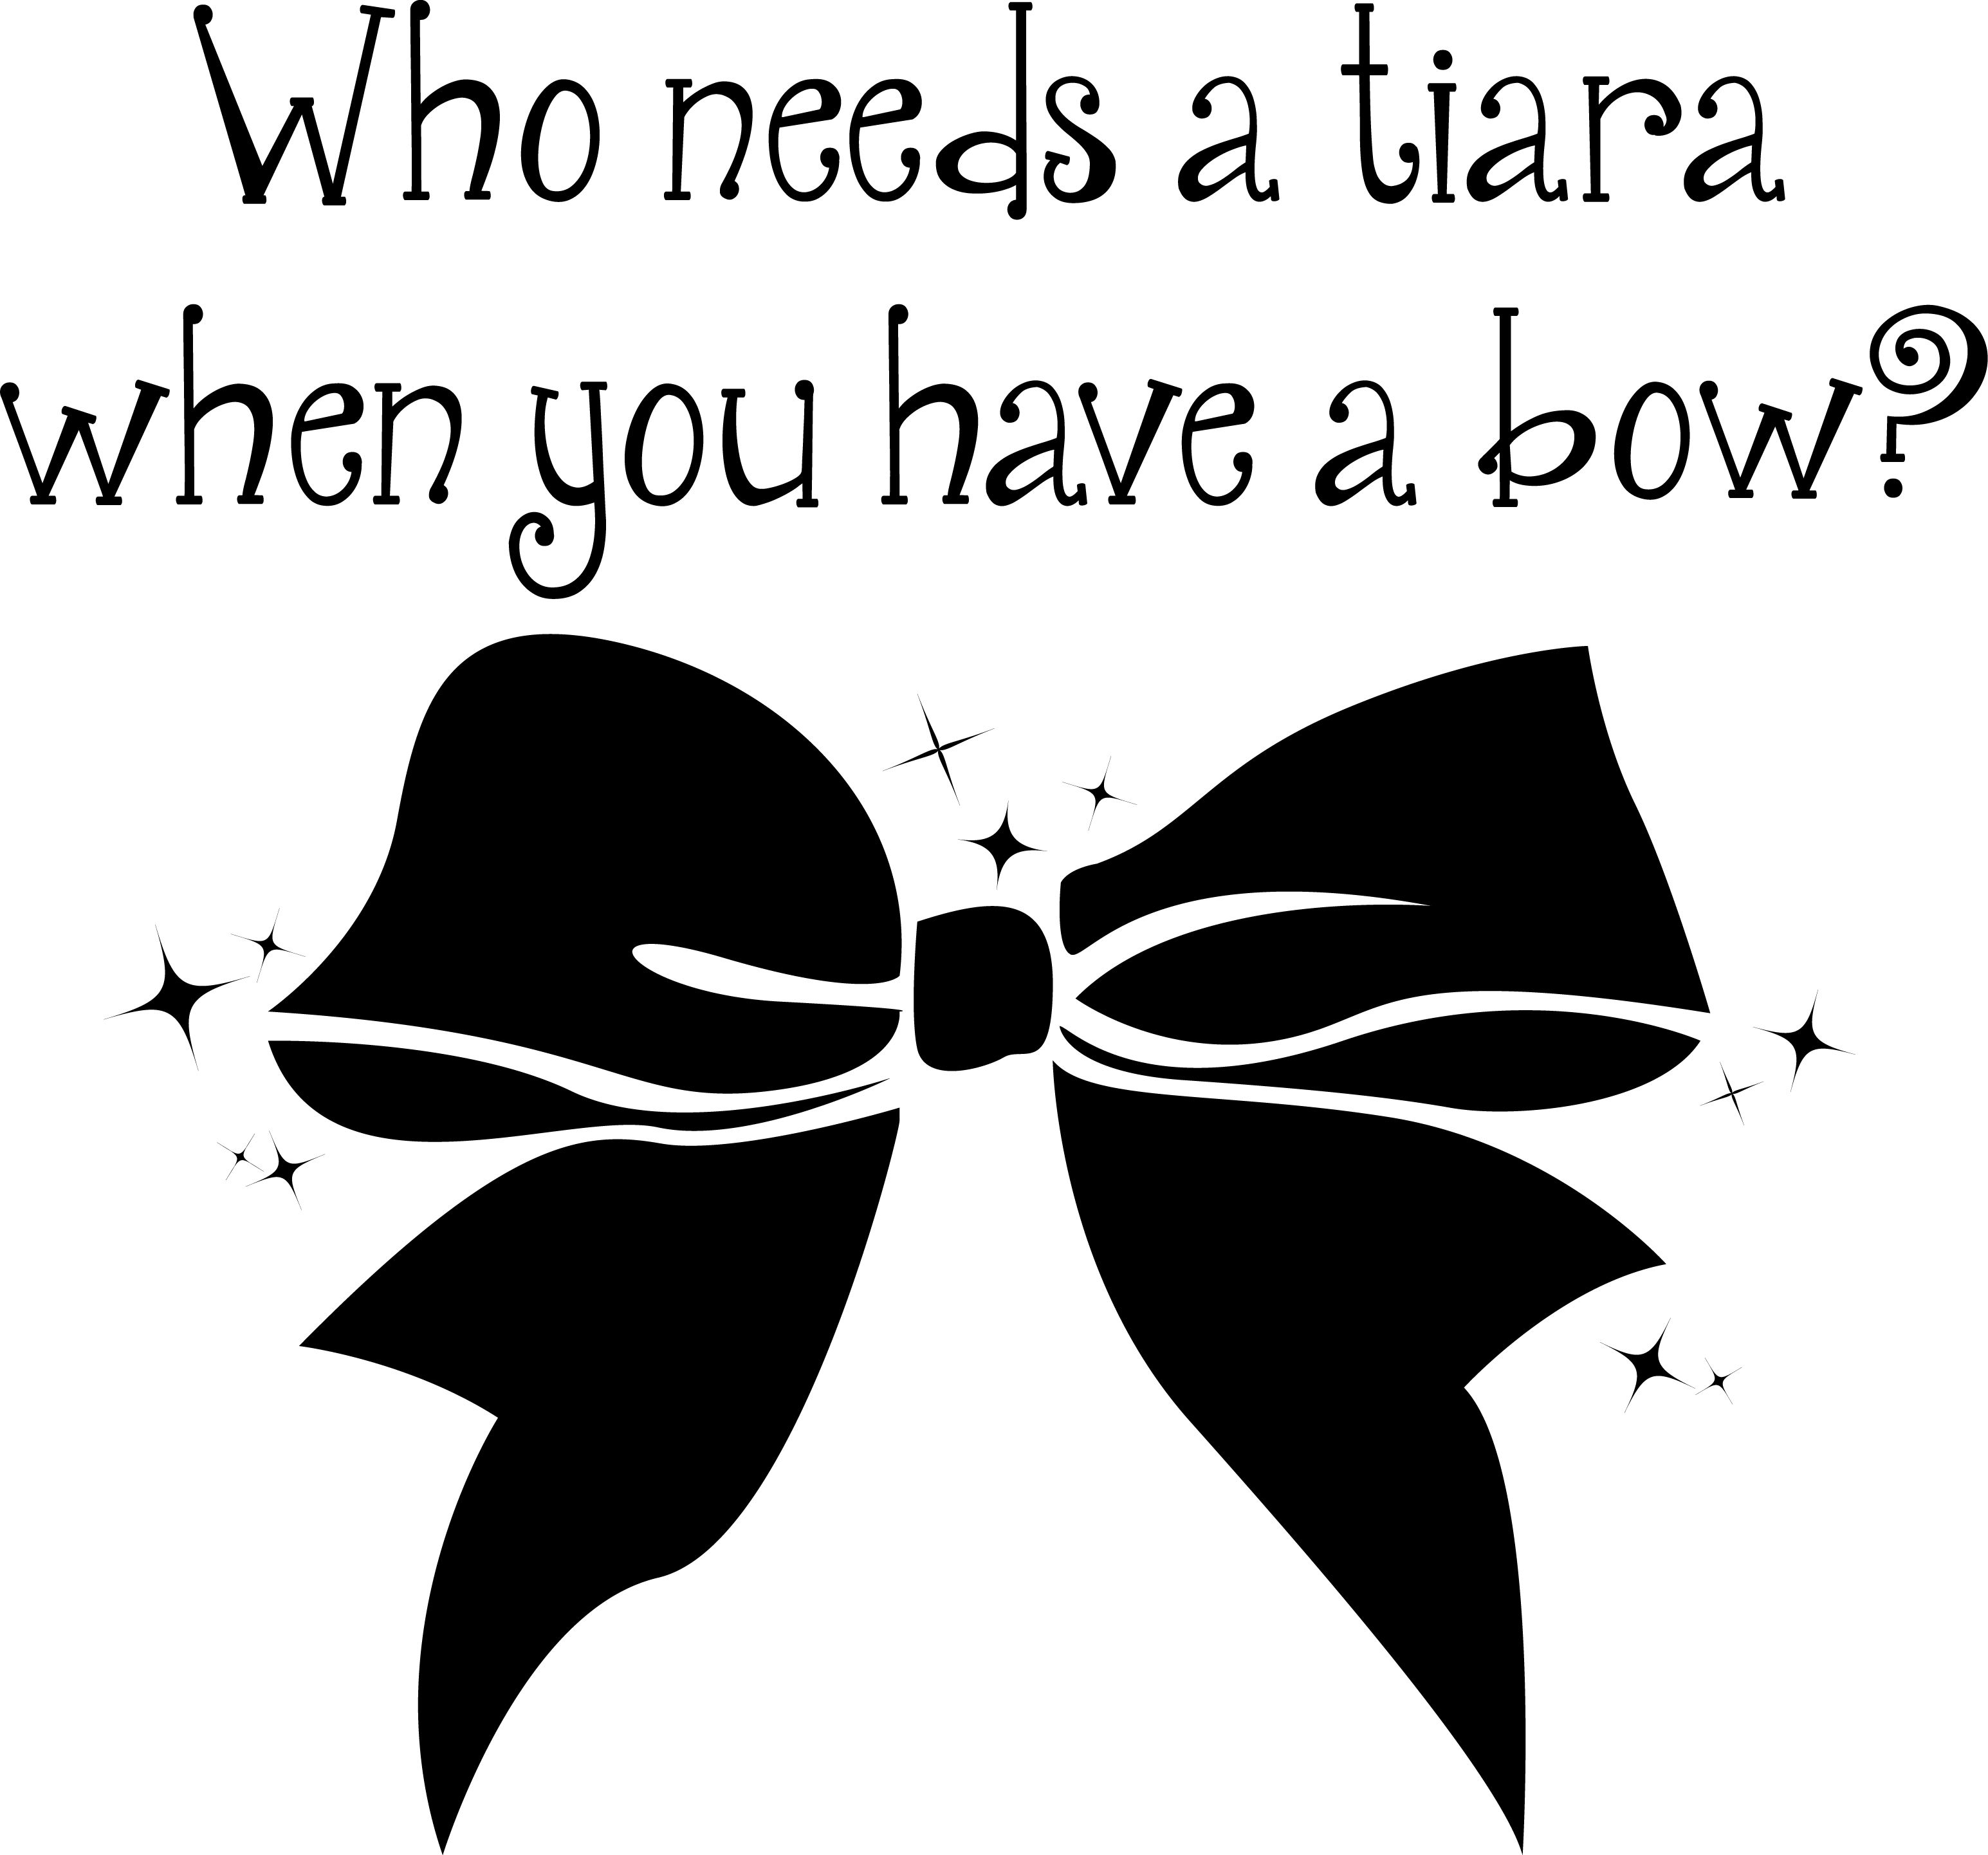 Pix For Gt Clip Art Cheer Bows Fundraising Ideas Pinterest Bow Clipart Bow Quotes Cheer Shirts